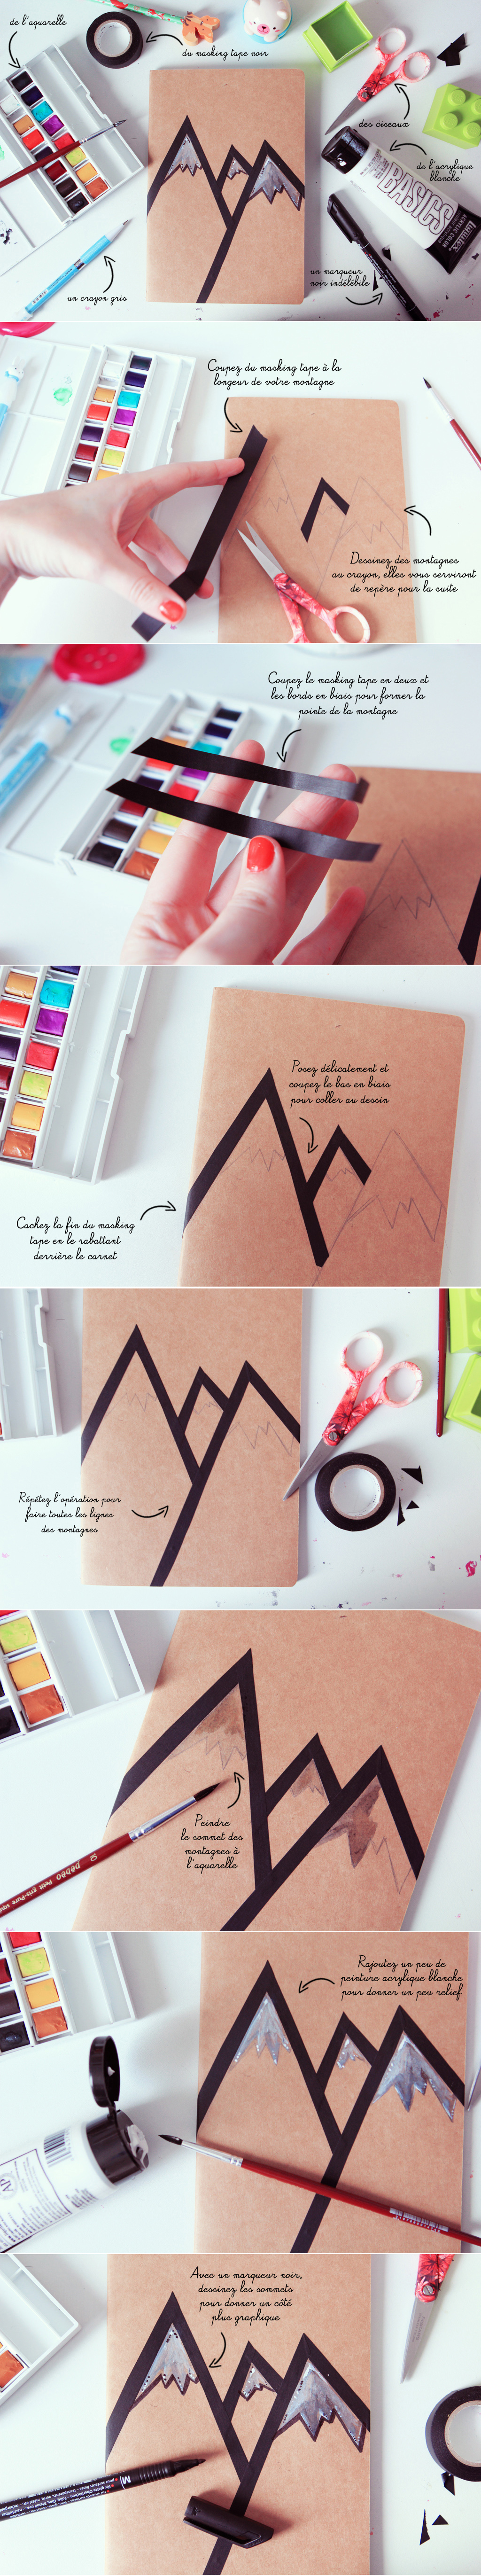 diy-carnet-mountain-paper-craft